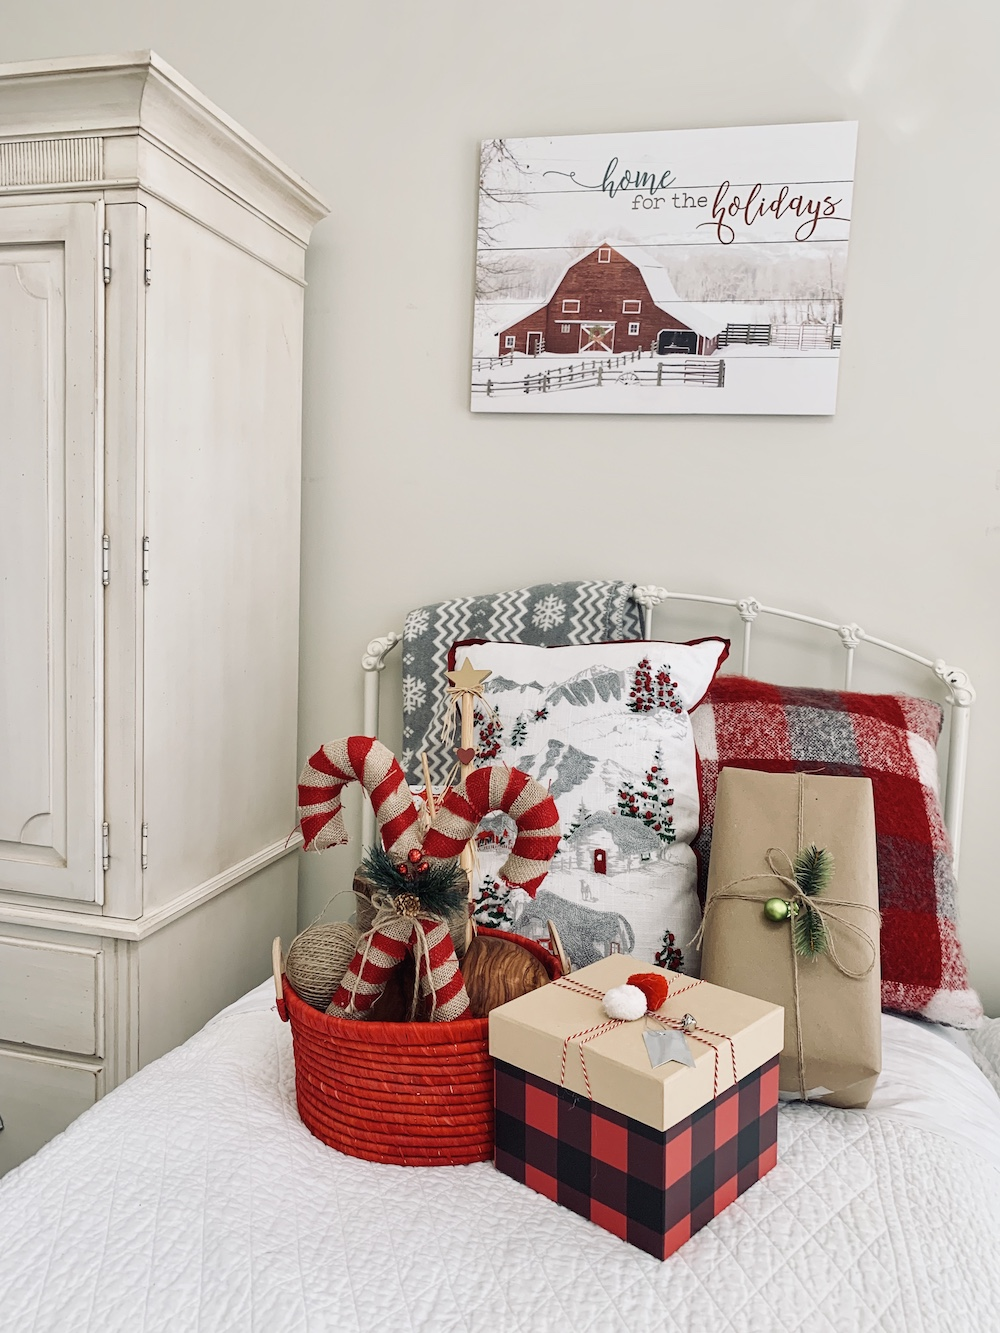 Christmas Home For The Holidays Guest Room #Winter #Affordable #BudgetFriendly #Christmas #DIY #ChristmasDecor #Decor #GuestRoom